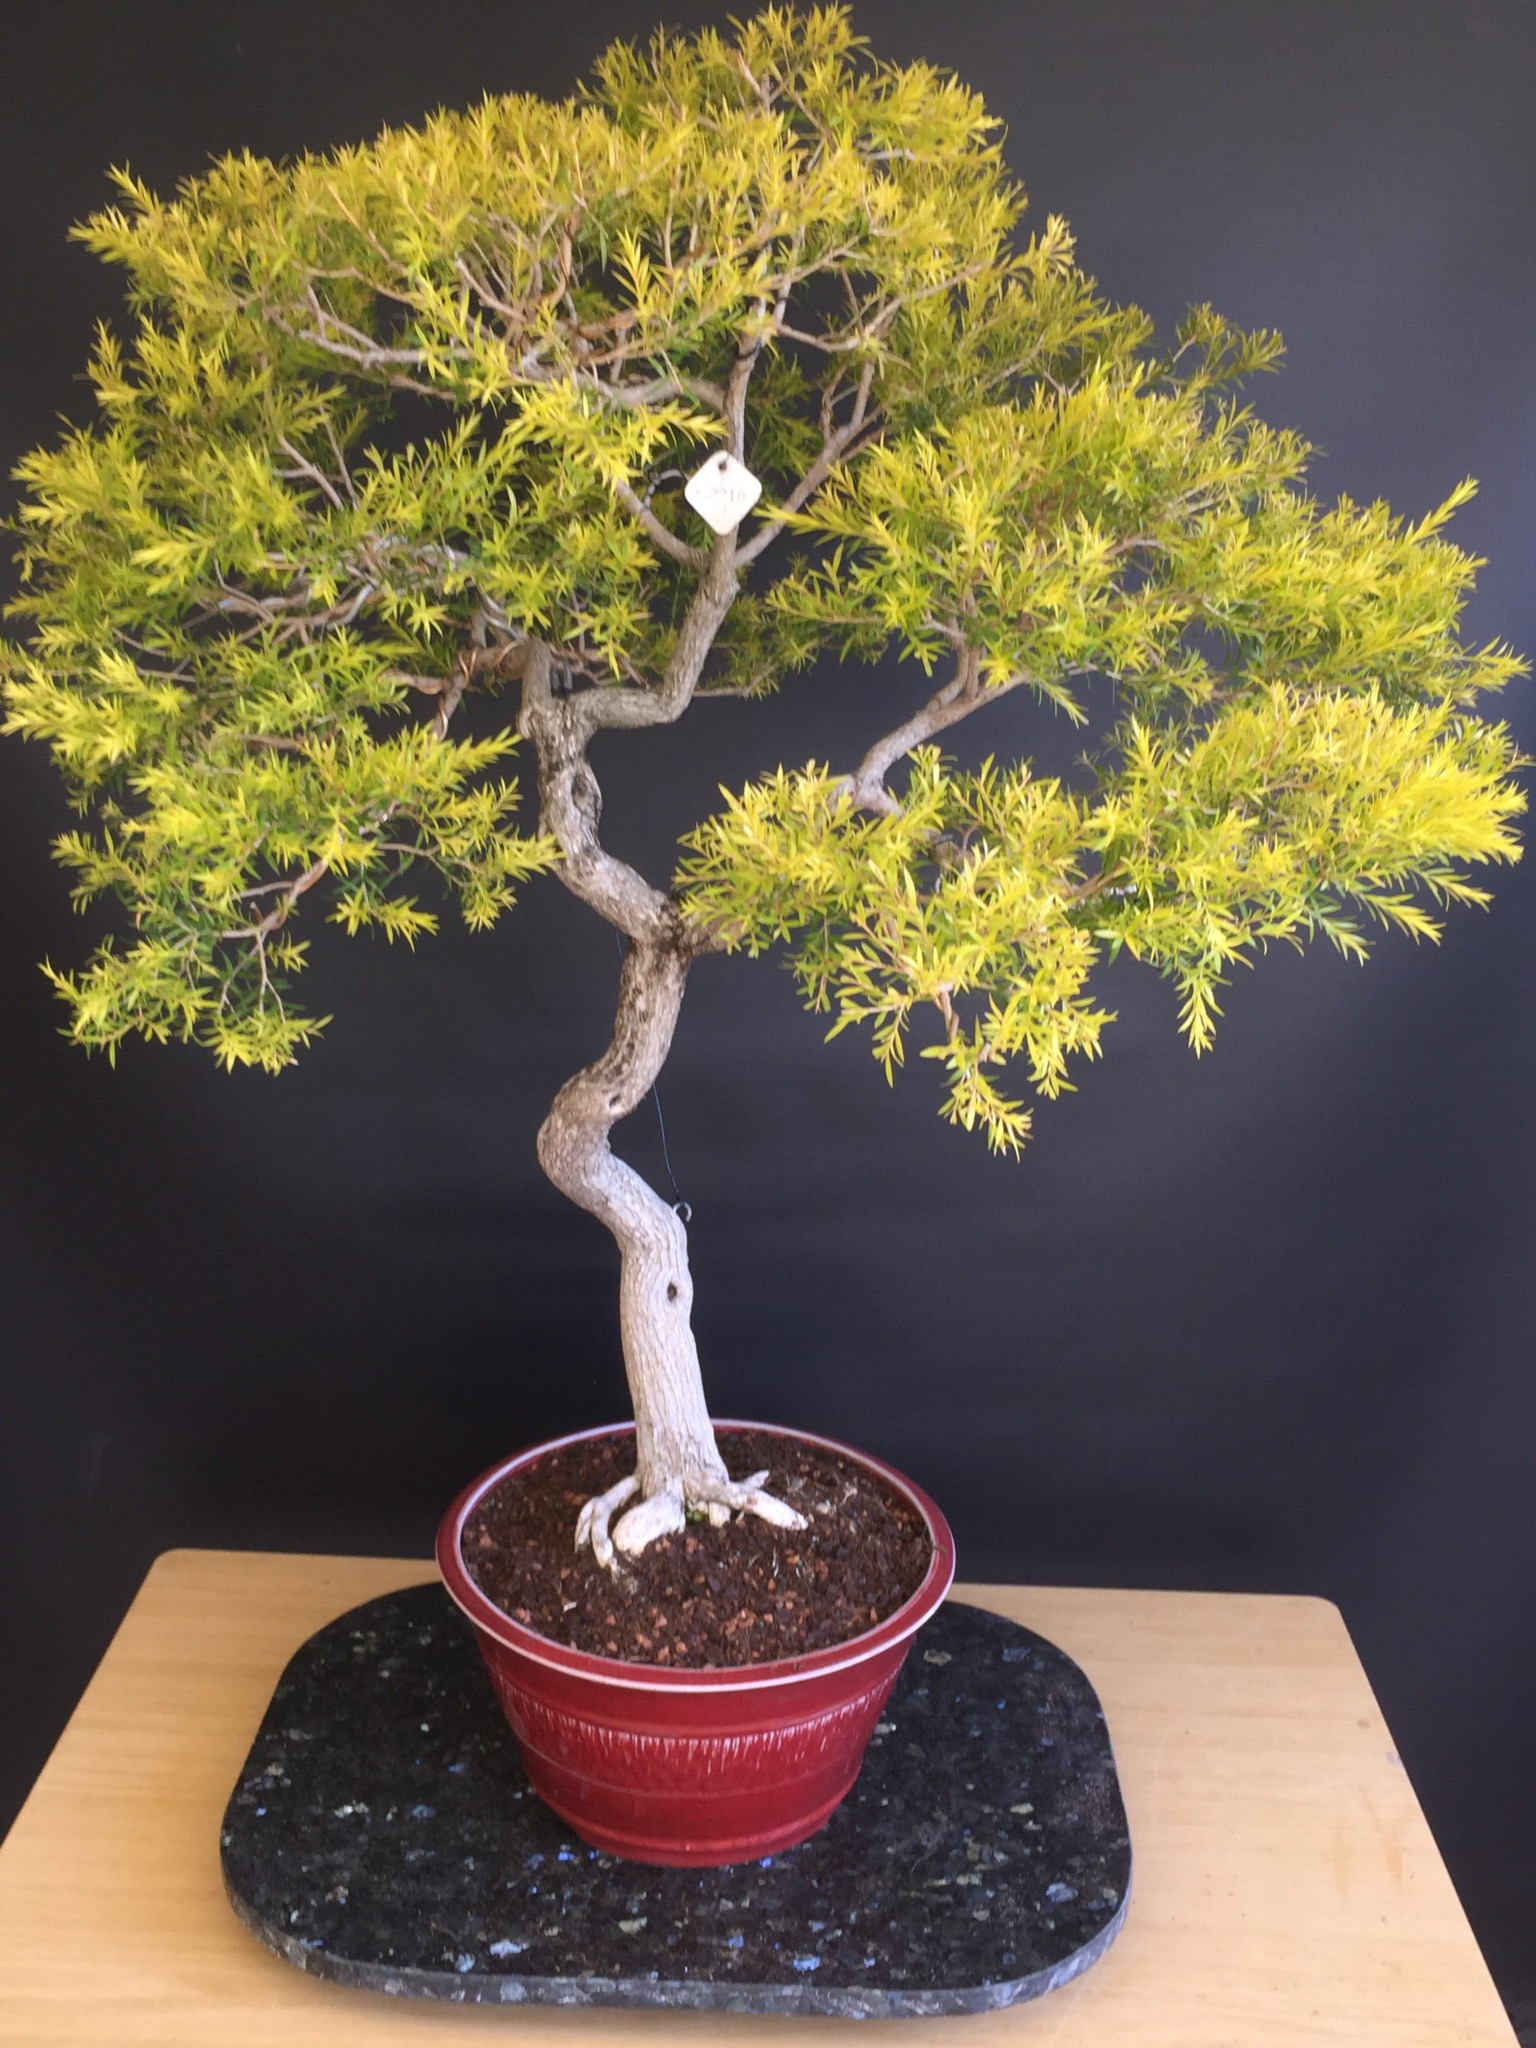 Nick's Melaleuca Bracteata Golden Gem